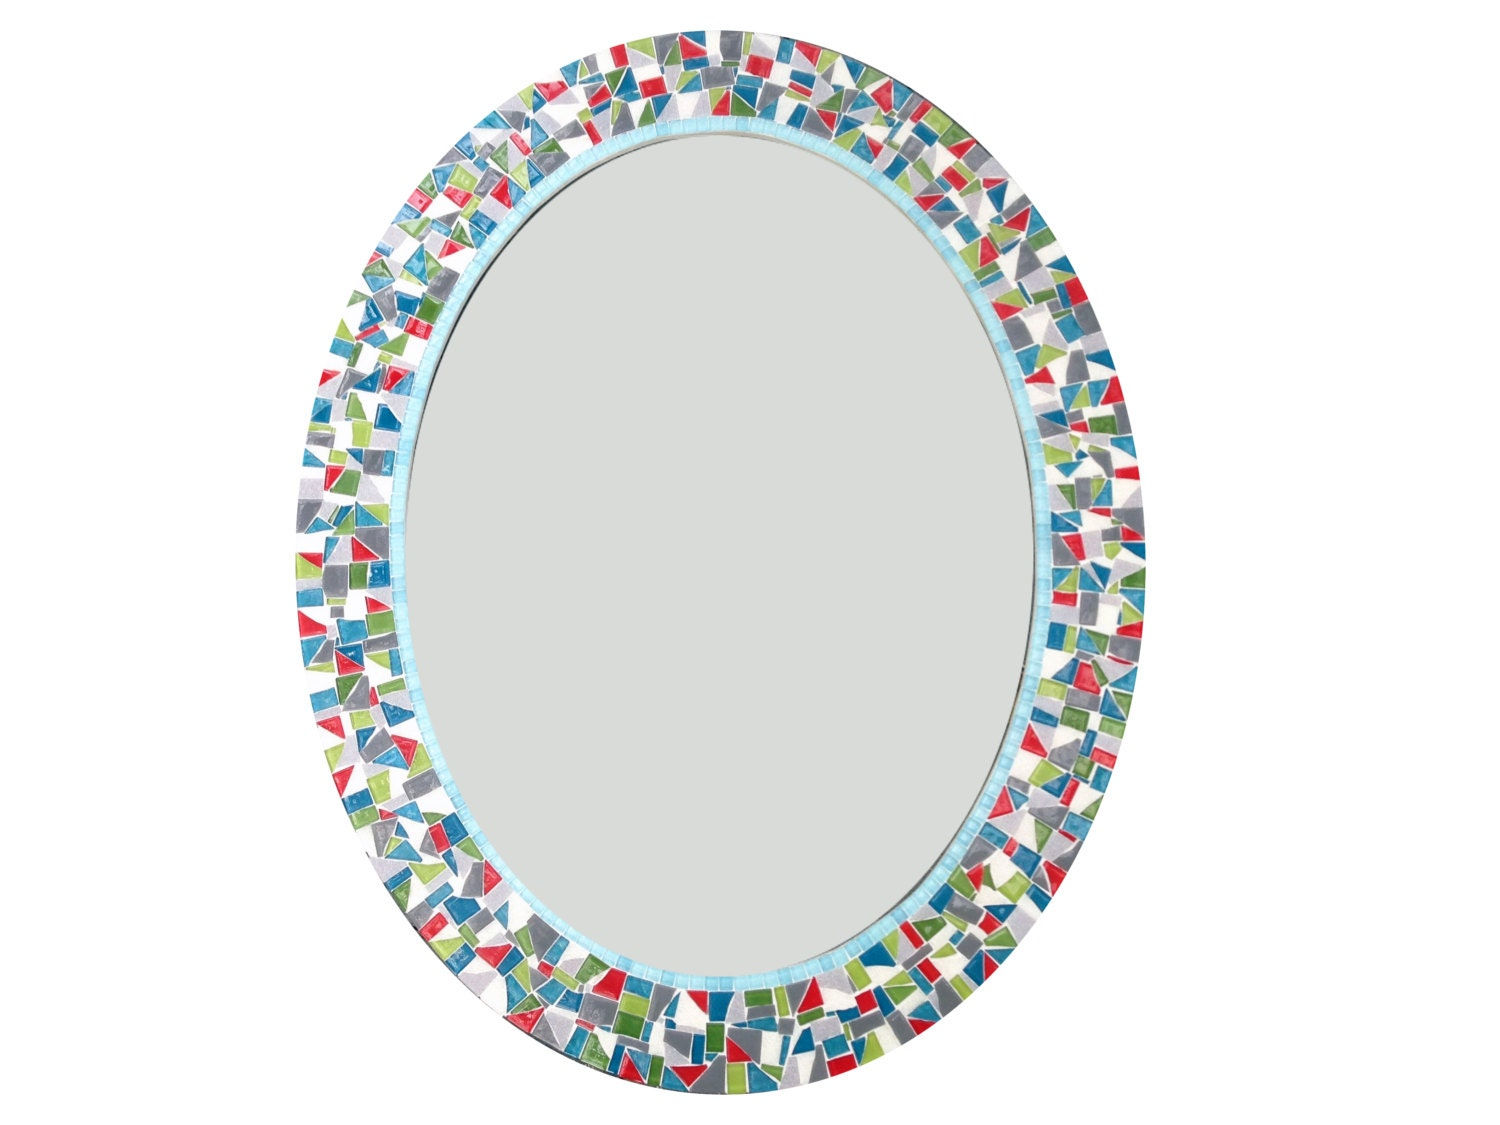 Colorful Oval Mosaic Wall Mirror / Teal Green White Red